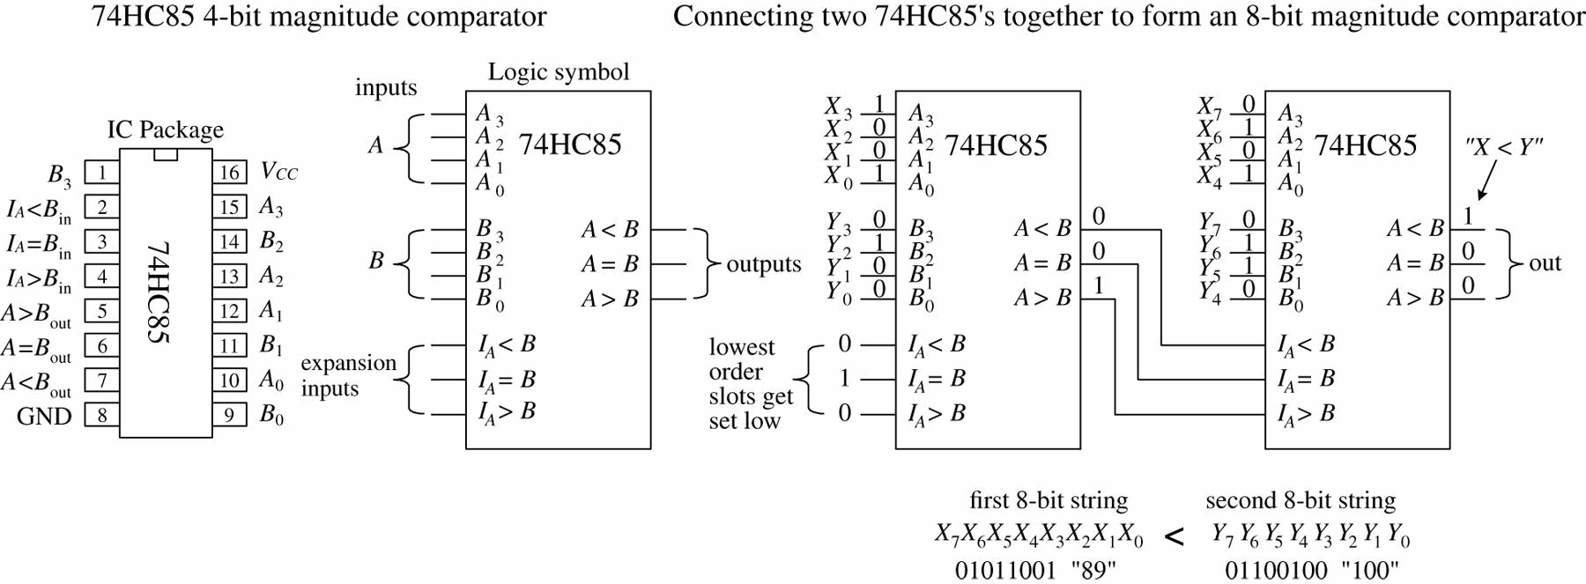 Digital Electronics Practical For Inventors Fourth 2 Bit Magnitude Comparator Logic Diagram Img